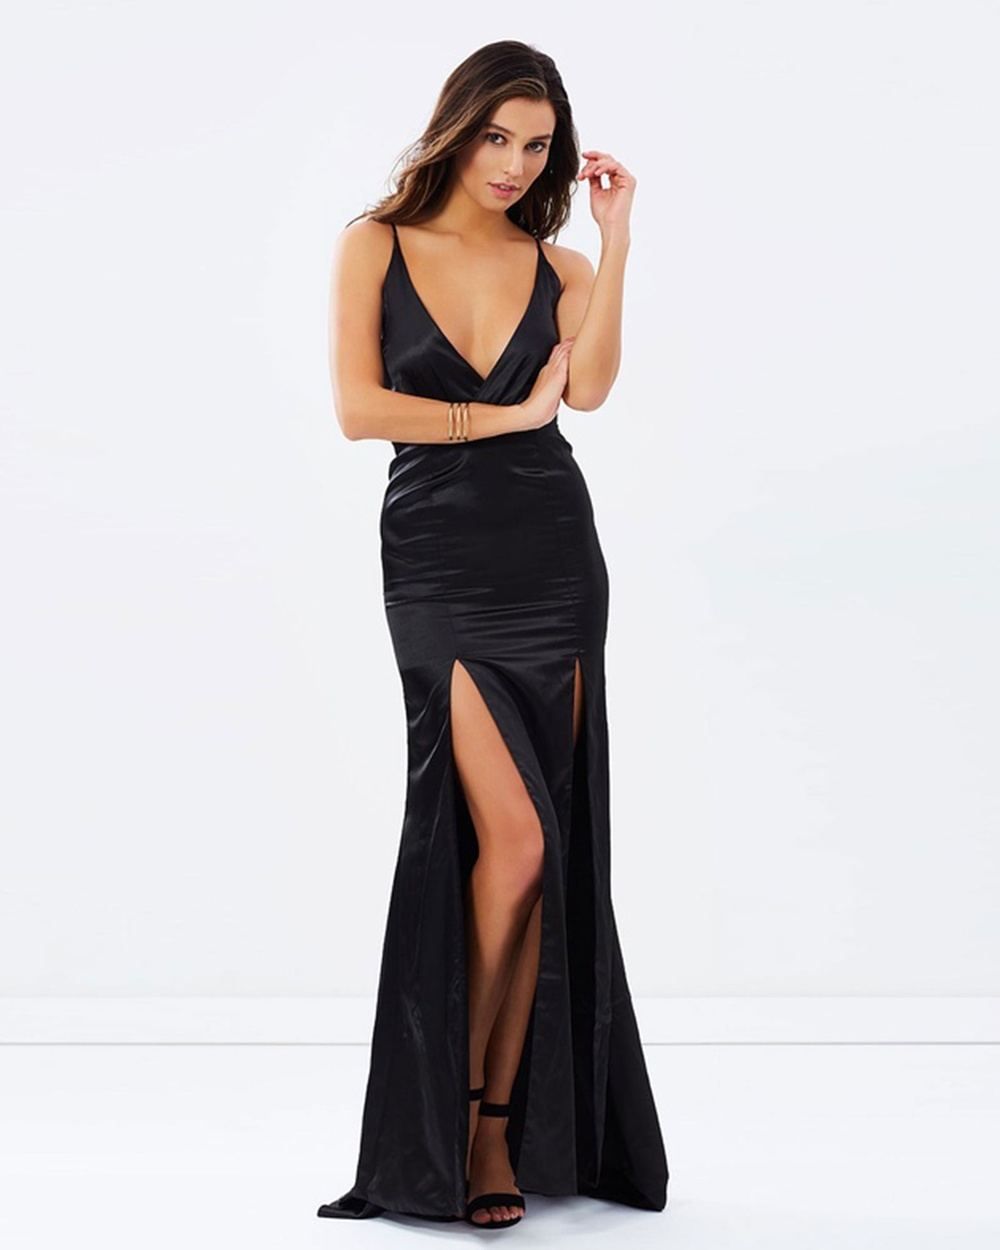 SKIVA Satin Evening Dress with Front Splits Dresses Black Satin Evening Dress with Front Splits